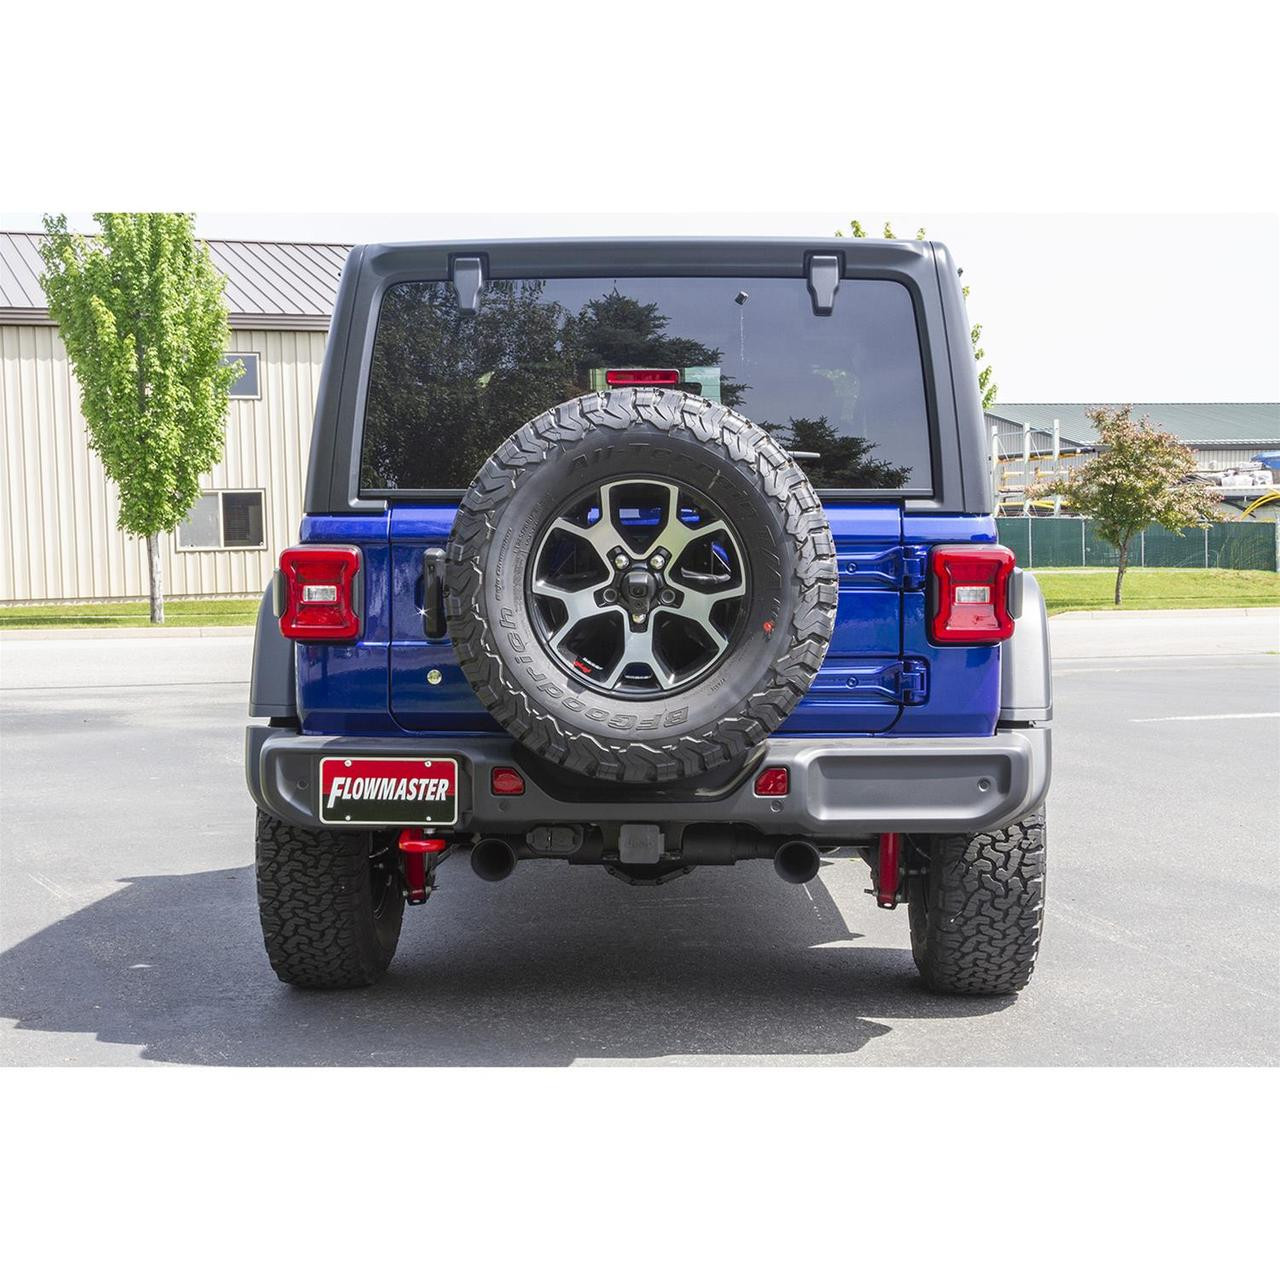 Flowmaster Outlaw Series Exhaust System JEEP Wrangler V6 817844 FREE SHIPPING and INSTANT REBATE SAVINGS